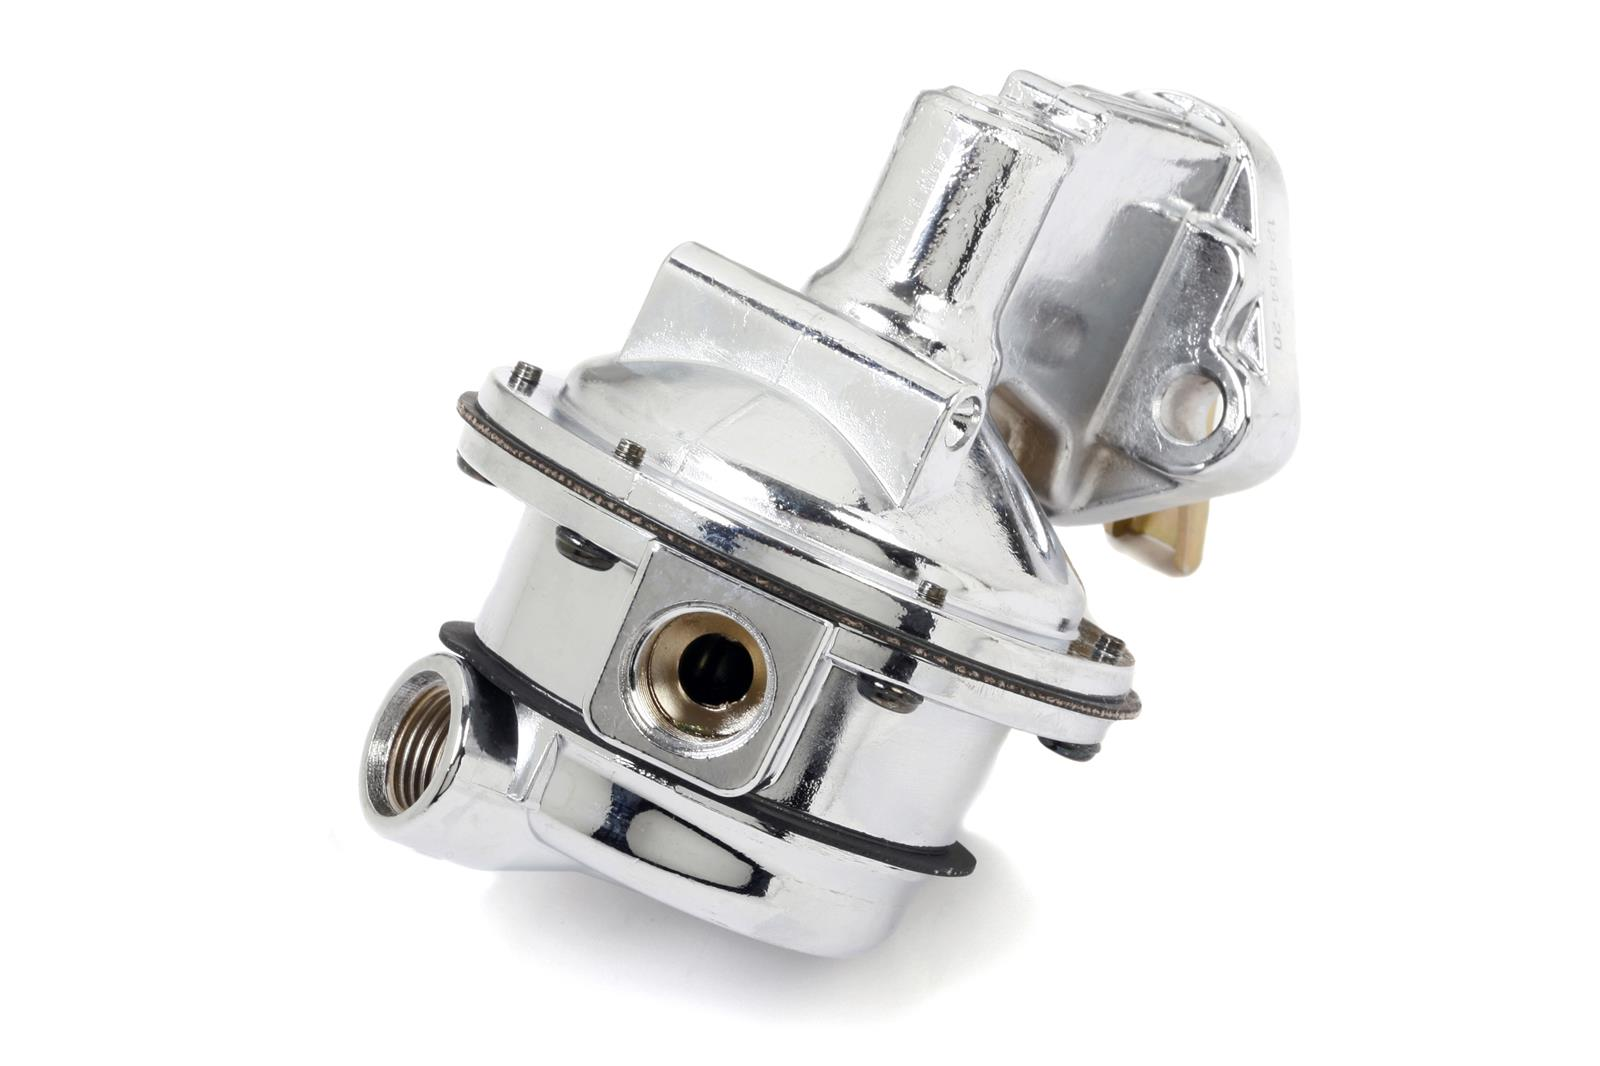 Holley Mechanical Fuel Pump 12-835; 80 gph 7.5 psi for Chevy 396-454 BBC